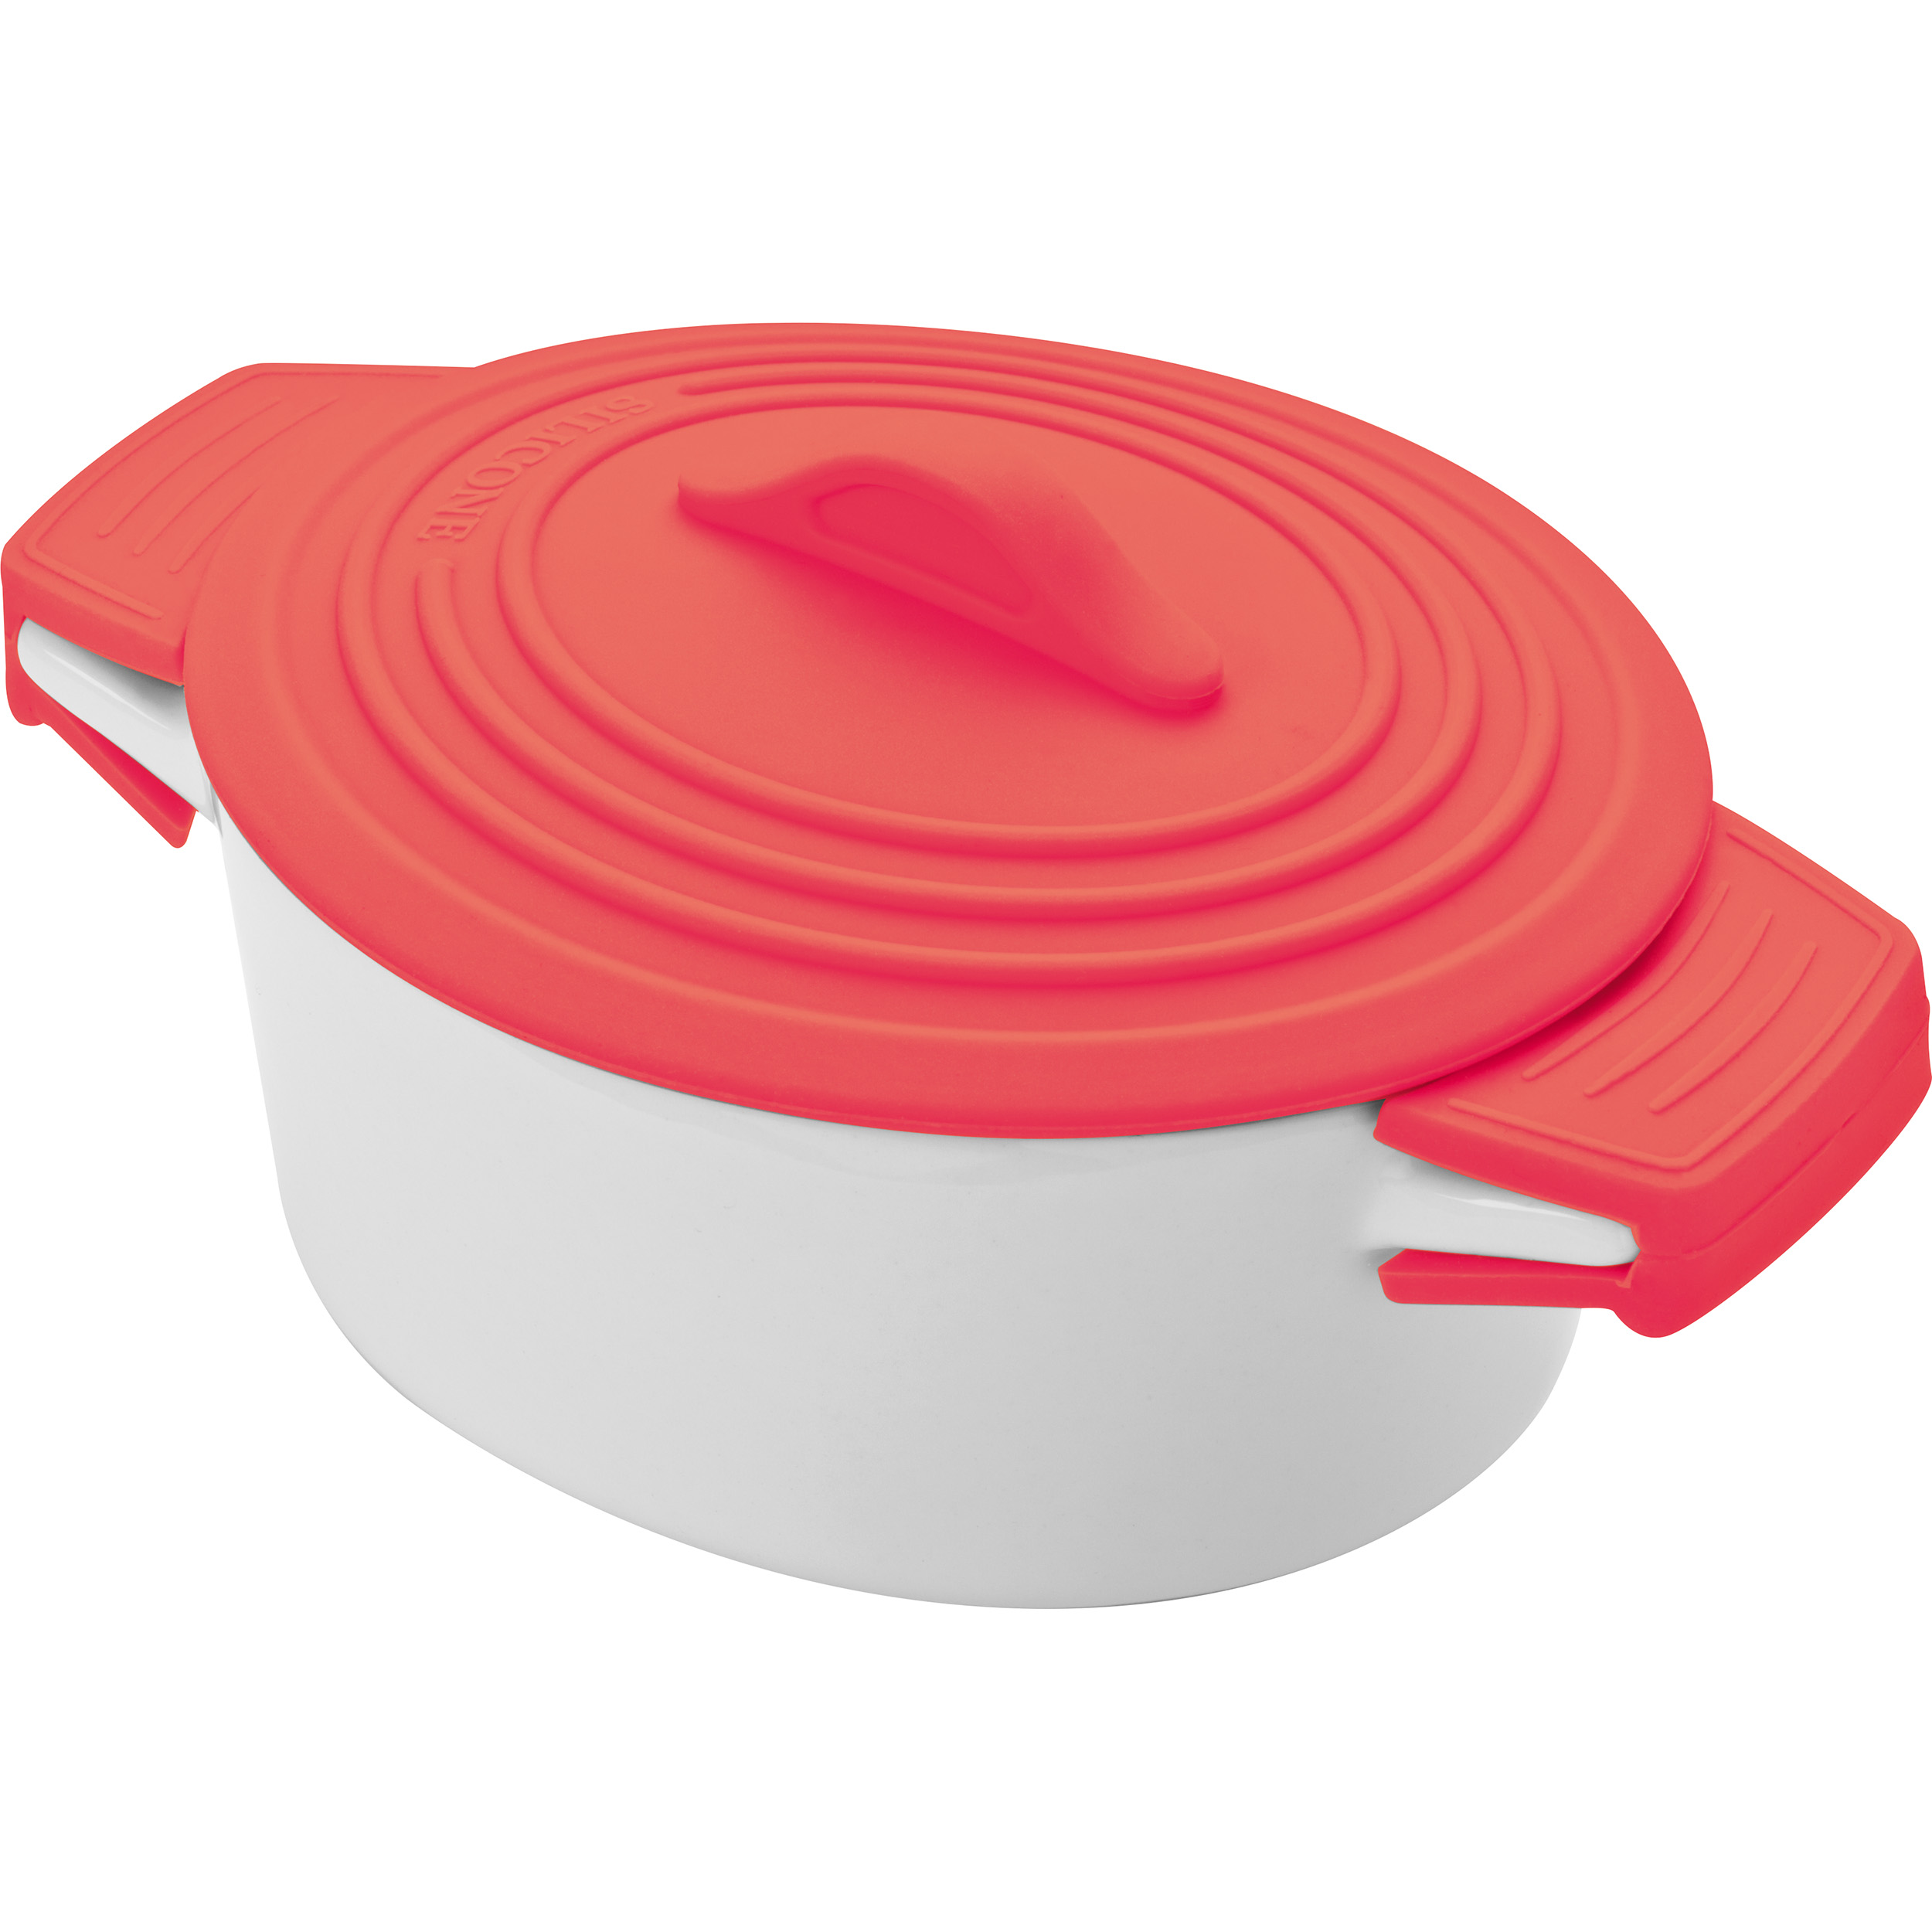 Porcelain pot with siliconee lid and heat protected handles